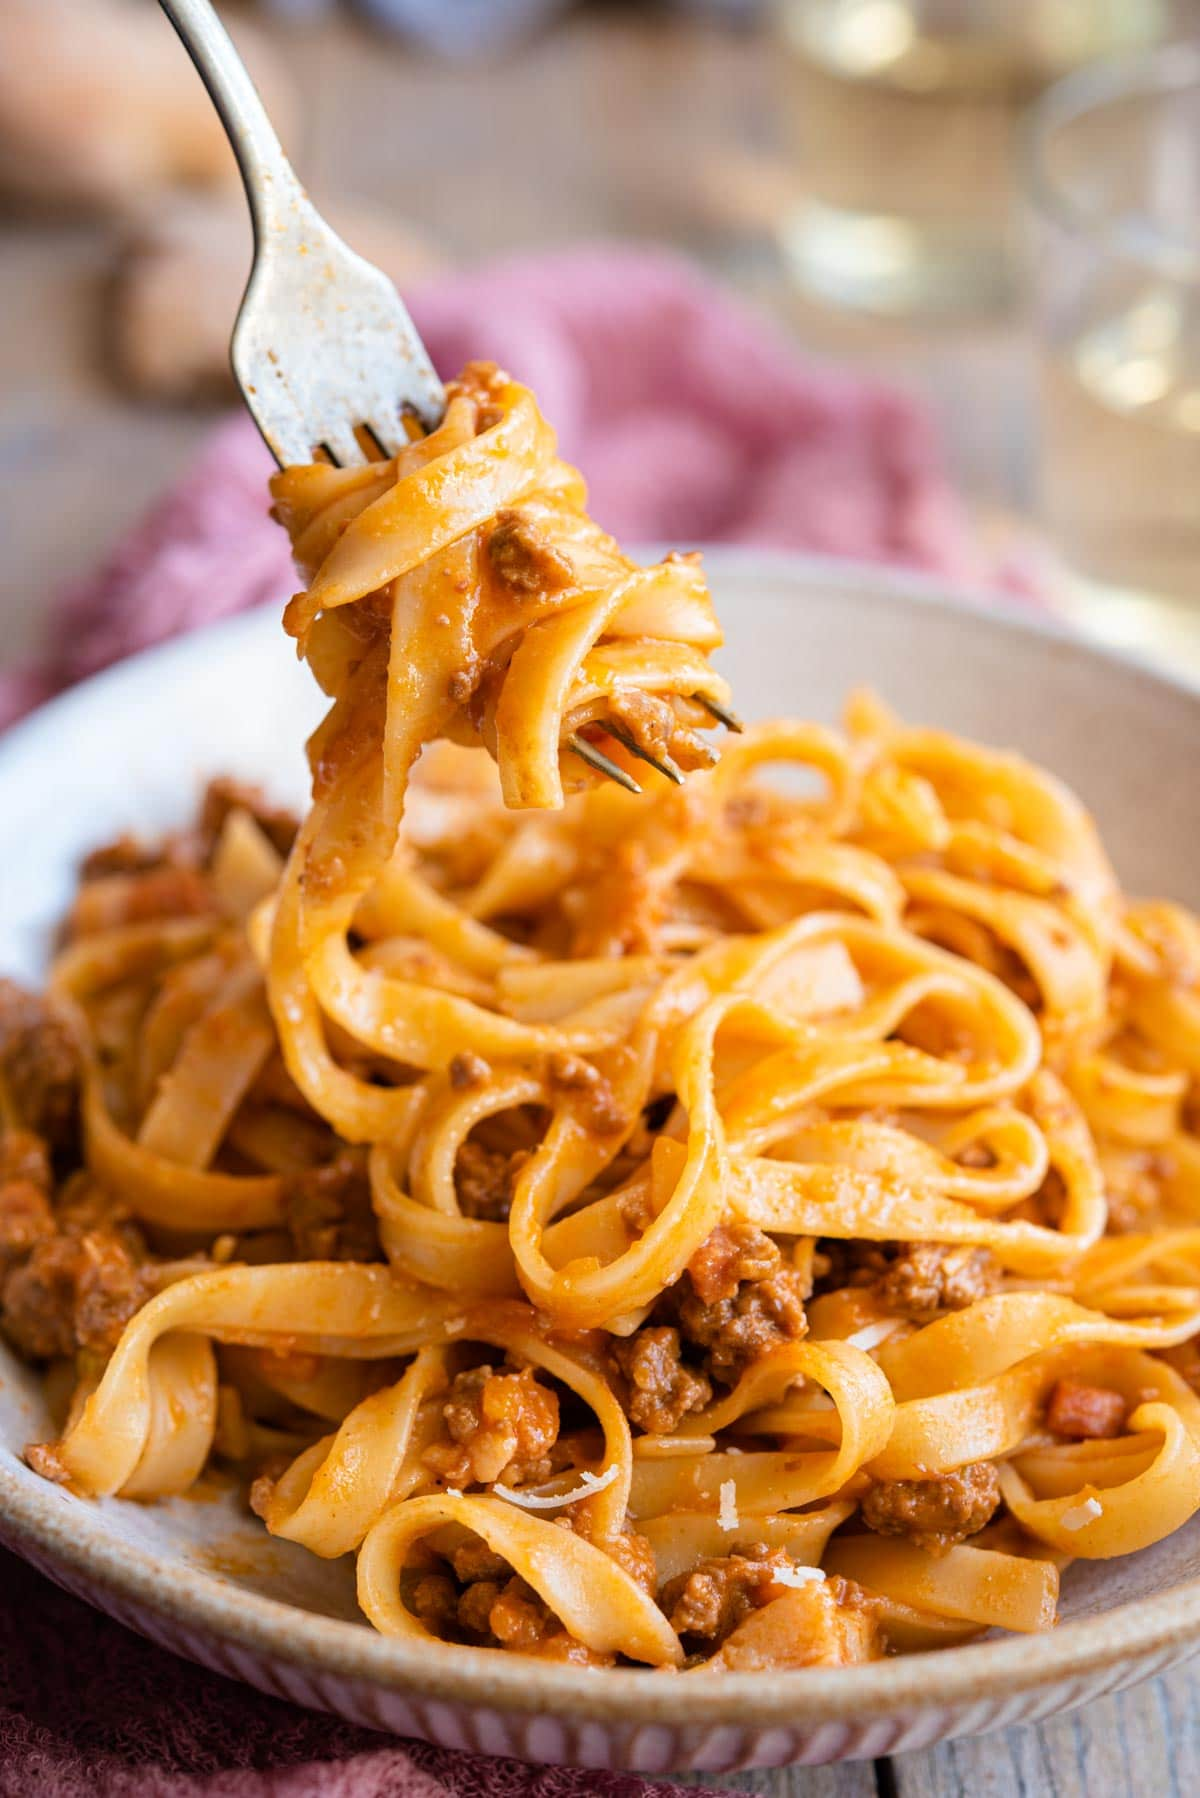 A close up of tagliatelli and bolognese sauce on a fork